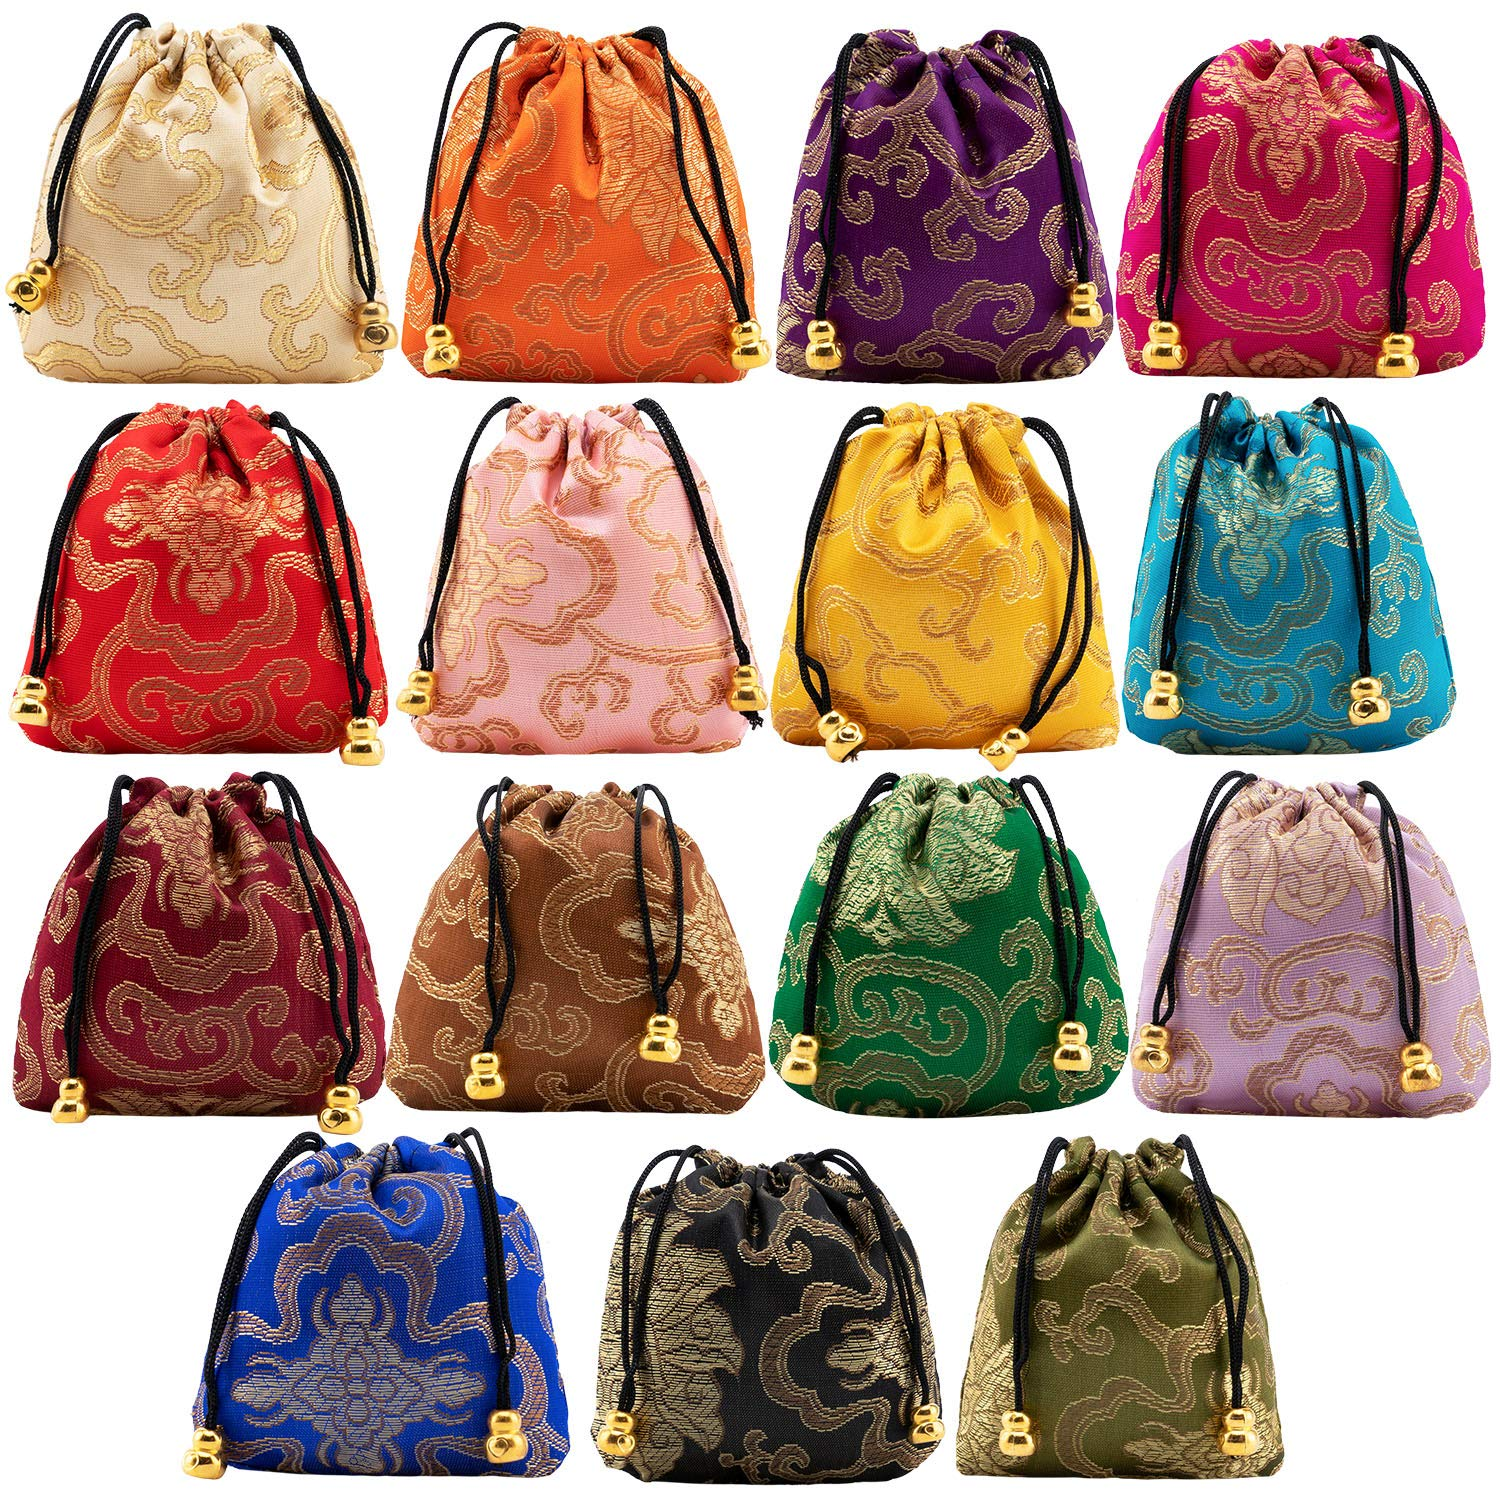 30PCS Silk Brocade Coin Bags Pouches with Drawstring, Jewelry Gift Bag Candy Sachet Pouch Small Chinese Embroidered Organizers Pocket for Women Girls Dice Necklaces Earrings Bracelets, Mix Colors by handrong